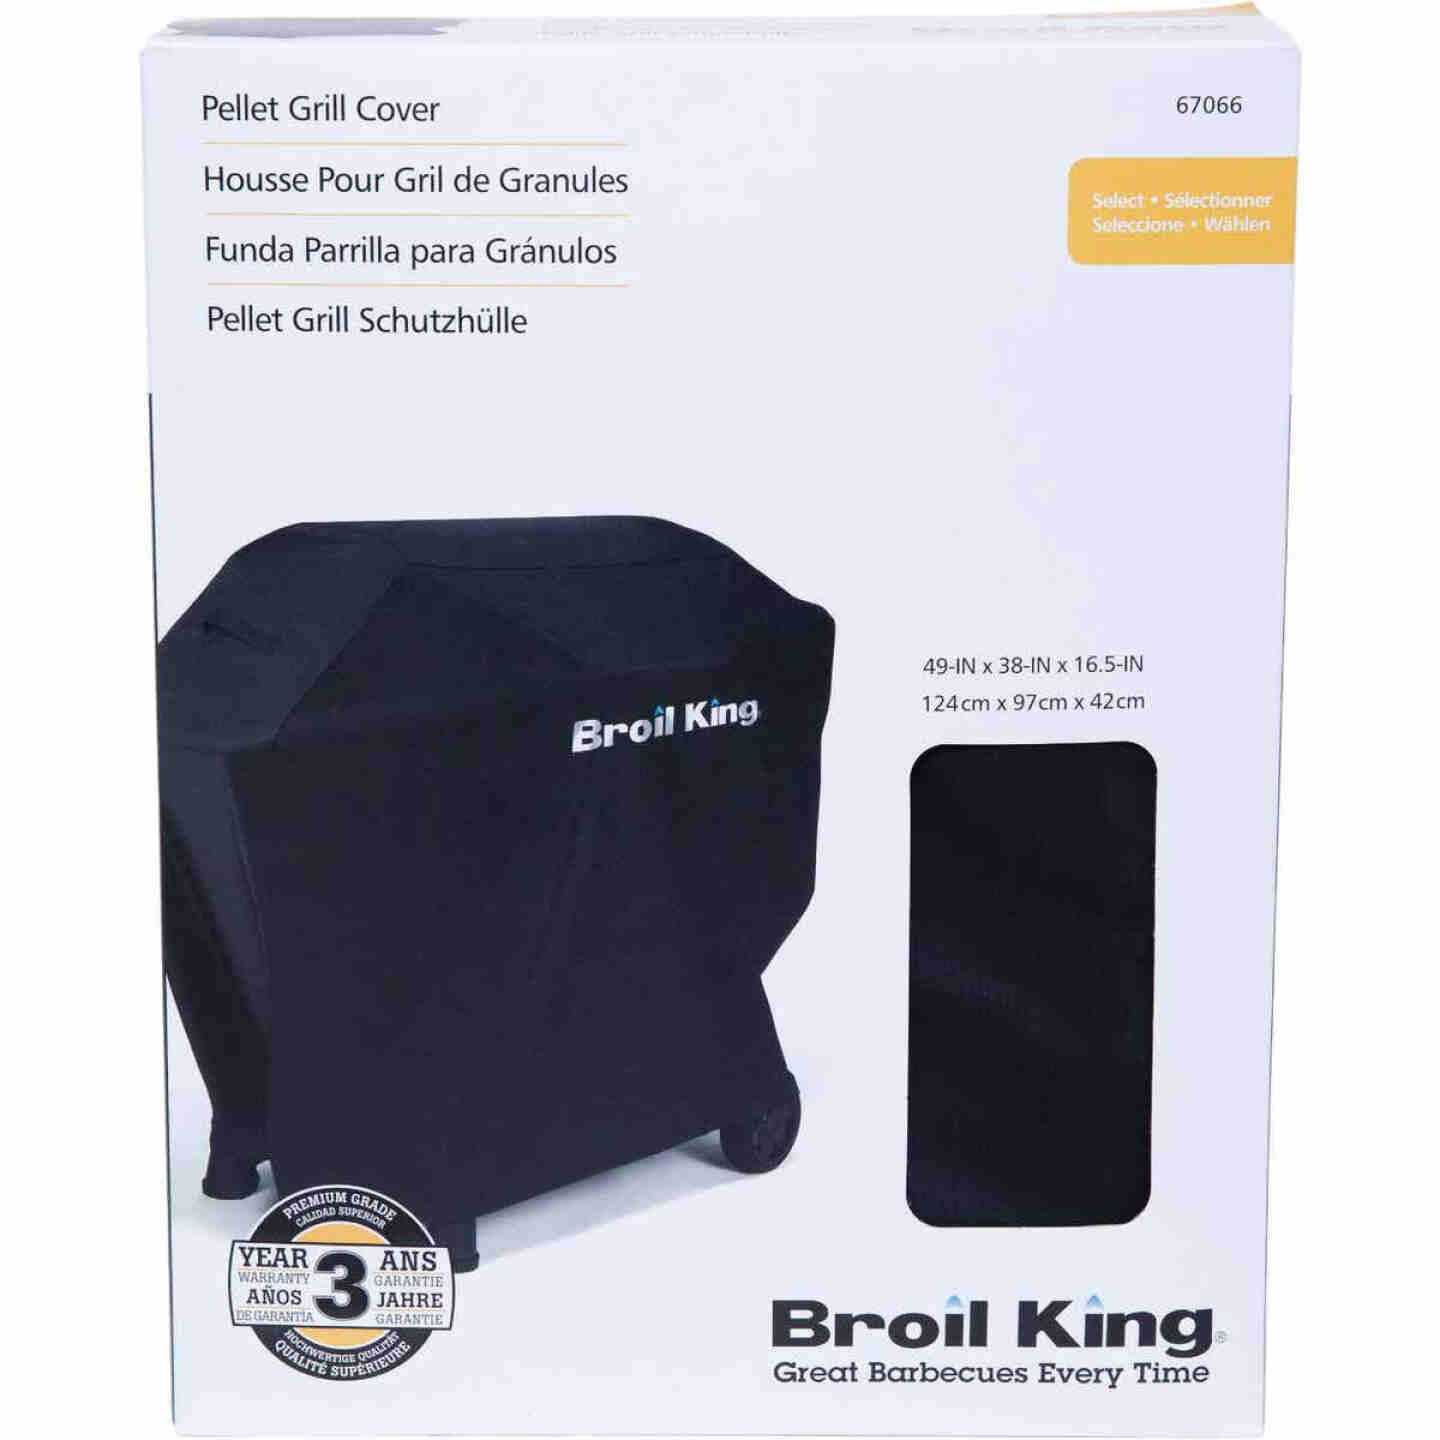 Broil King Crown Pellet 500 49 In. Black Grill Cover Image 2